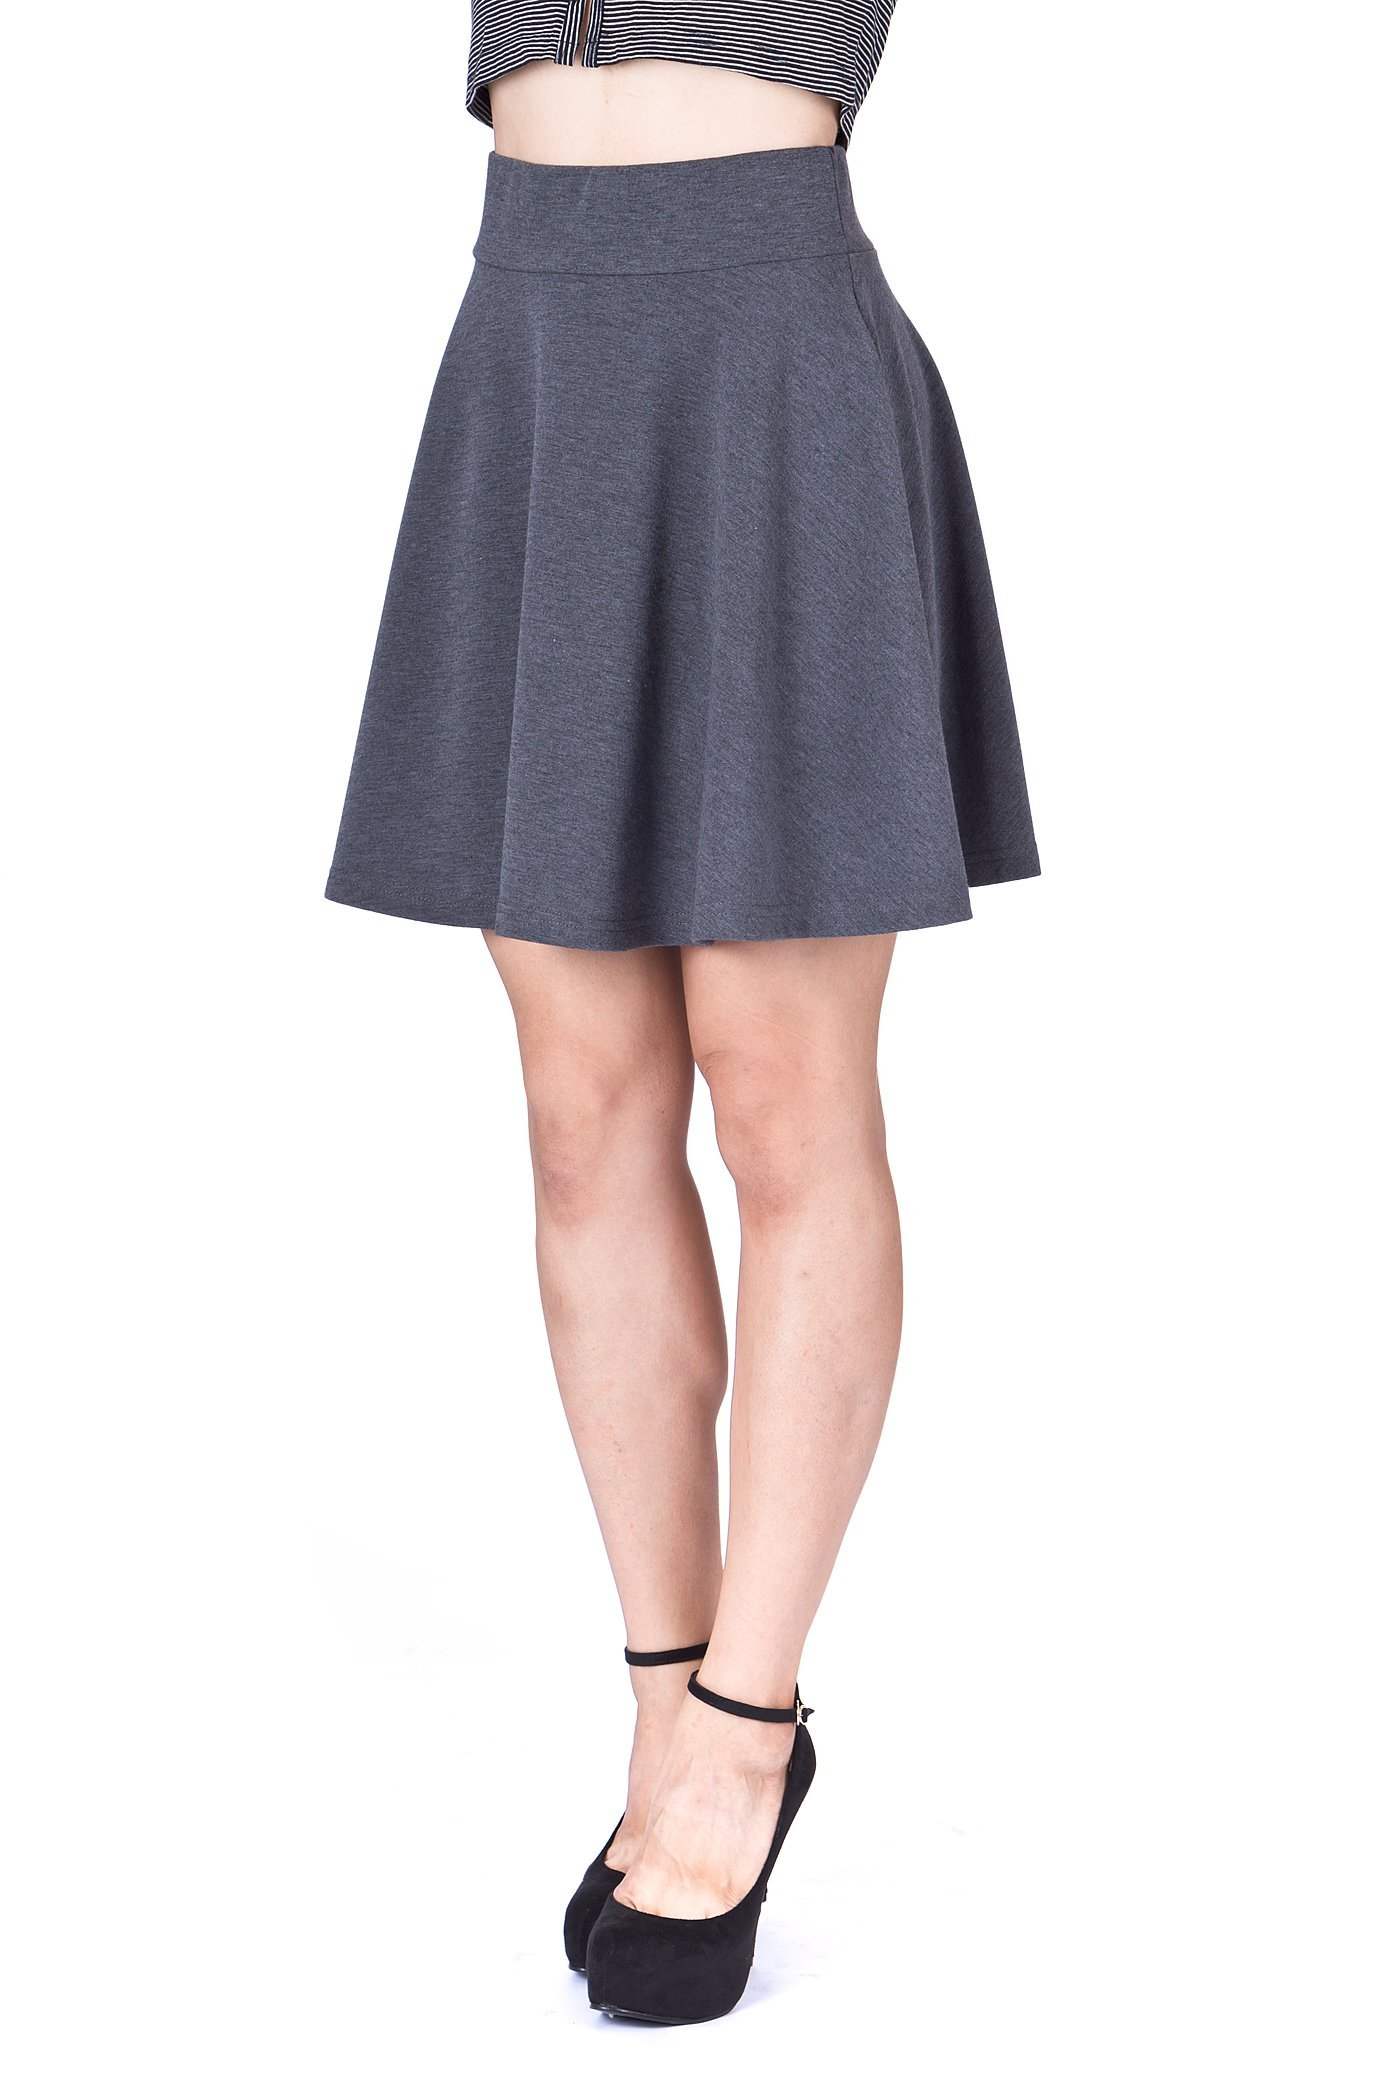 Swing Swing Wide High Waist A line Full Flared Swing Skater Short Mini Skirt Charcoal 6 1